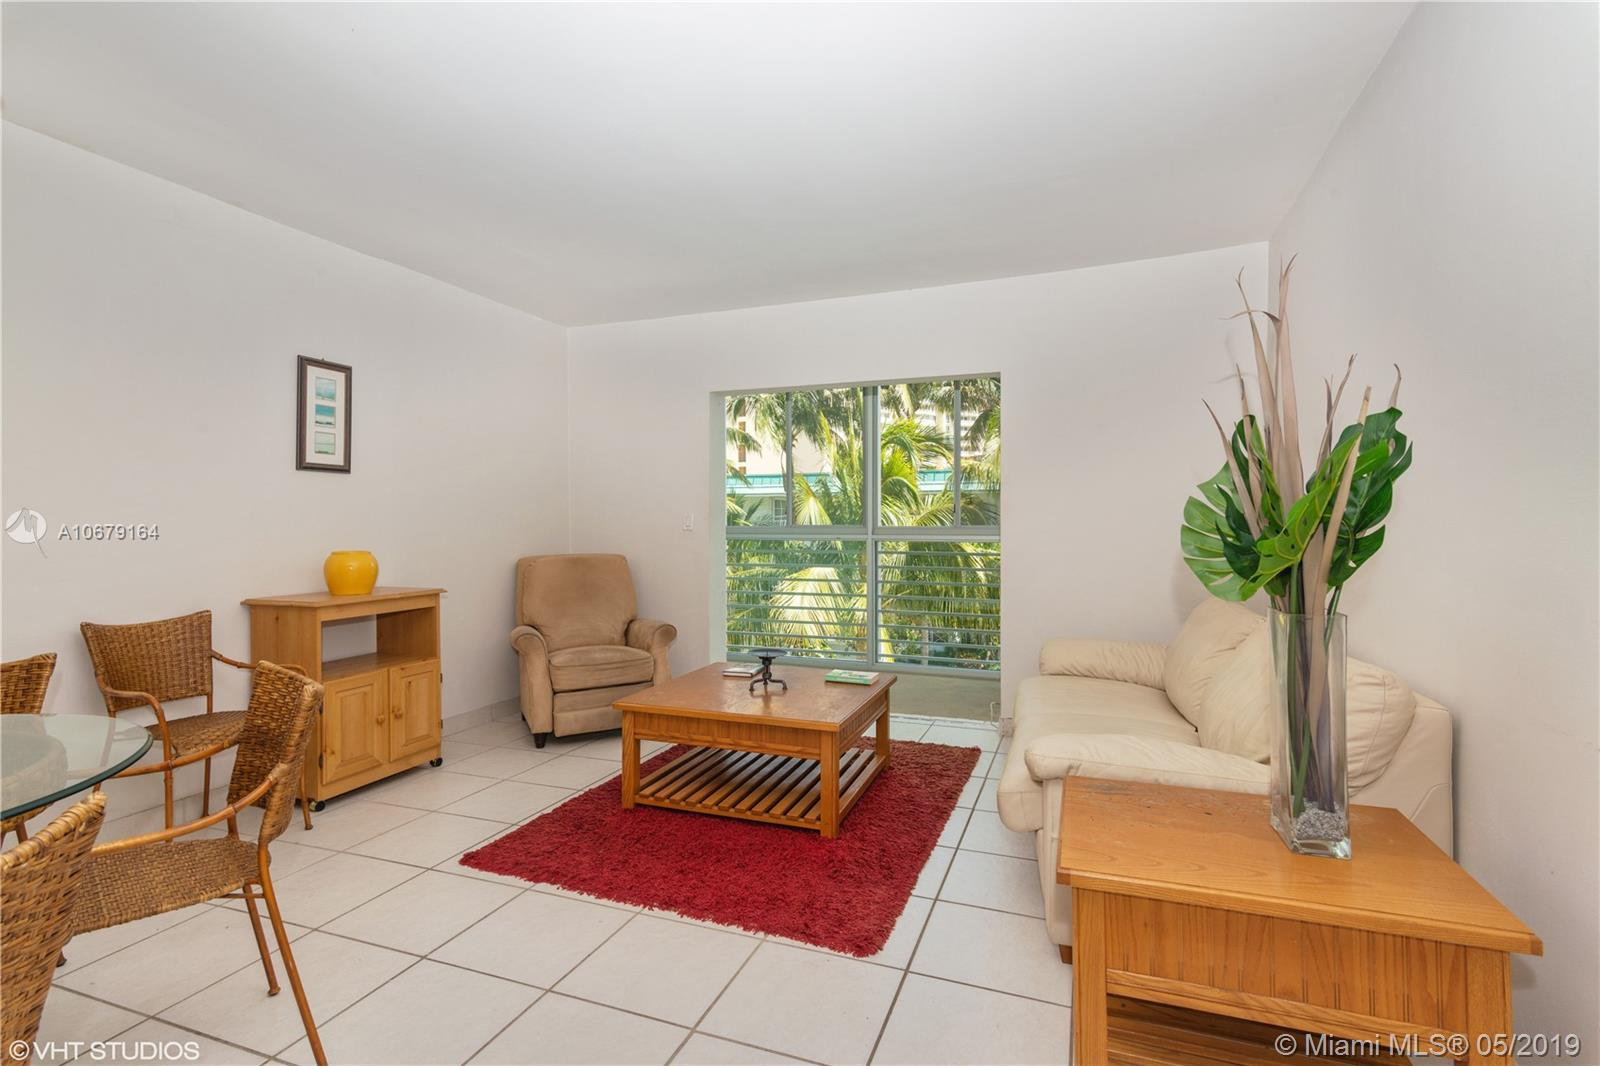 Come Live Key Biscayne'S Island Lifestyle In This Fresh And Comfortable Apartment! This Boutique Building Offers Great Privacy And A Floor Plan The Washes Away The Feeling On Being Inside A Condominium. With Only 21 Apartments Within The Structure, The New Owner Can Really Enjoy The Space Between Themselves And Their Neighbors. The Building Has Been Upgraded To Have New Front Doors And Hallways, While The Apartment Has Been Recently Renovated To Have An Enclosed Balcony And New Windows. This Creates The Perfect Space To Enjoy Kb'S Sunny Days Under The A/C And Even Allow The New Owner To Set Out And Enjoy Great Weather At A Whim. Also Coupled With A Stone Laden Kitchen And Bathroom, The Interior Living Space Is Elegant And Highly Desirable. Located Steps From The Beach And Easy To Show.